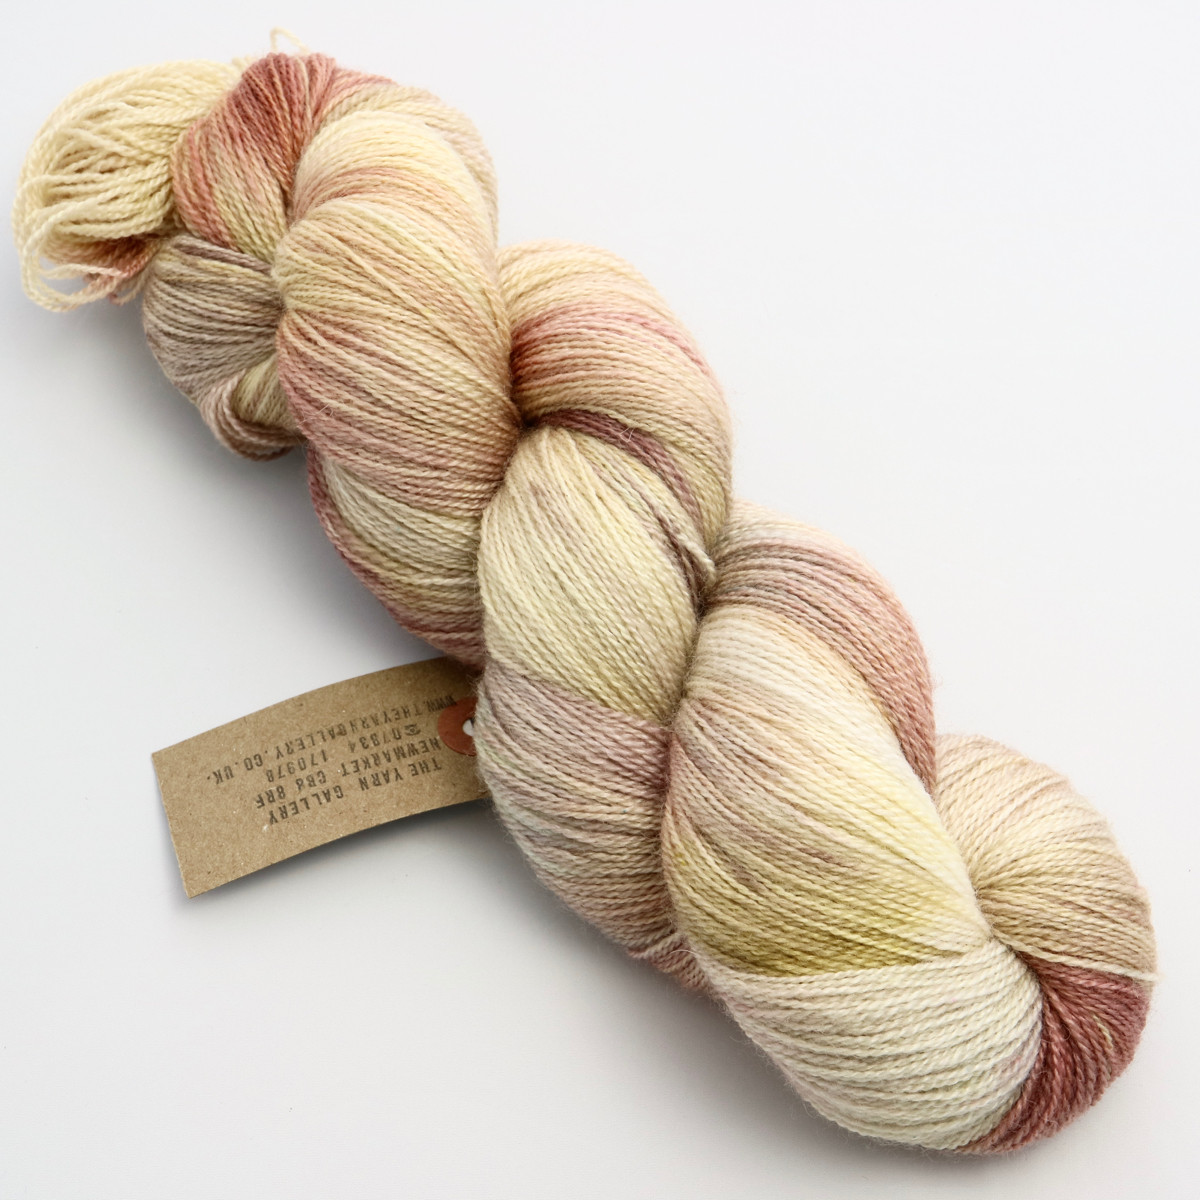 Luxury Shimmer Pebble Beach the Yarn Gallery Yarn Outlet Of Amazing 50 Photos Yarn Outlet